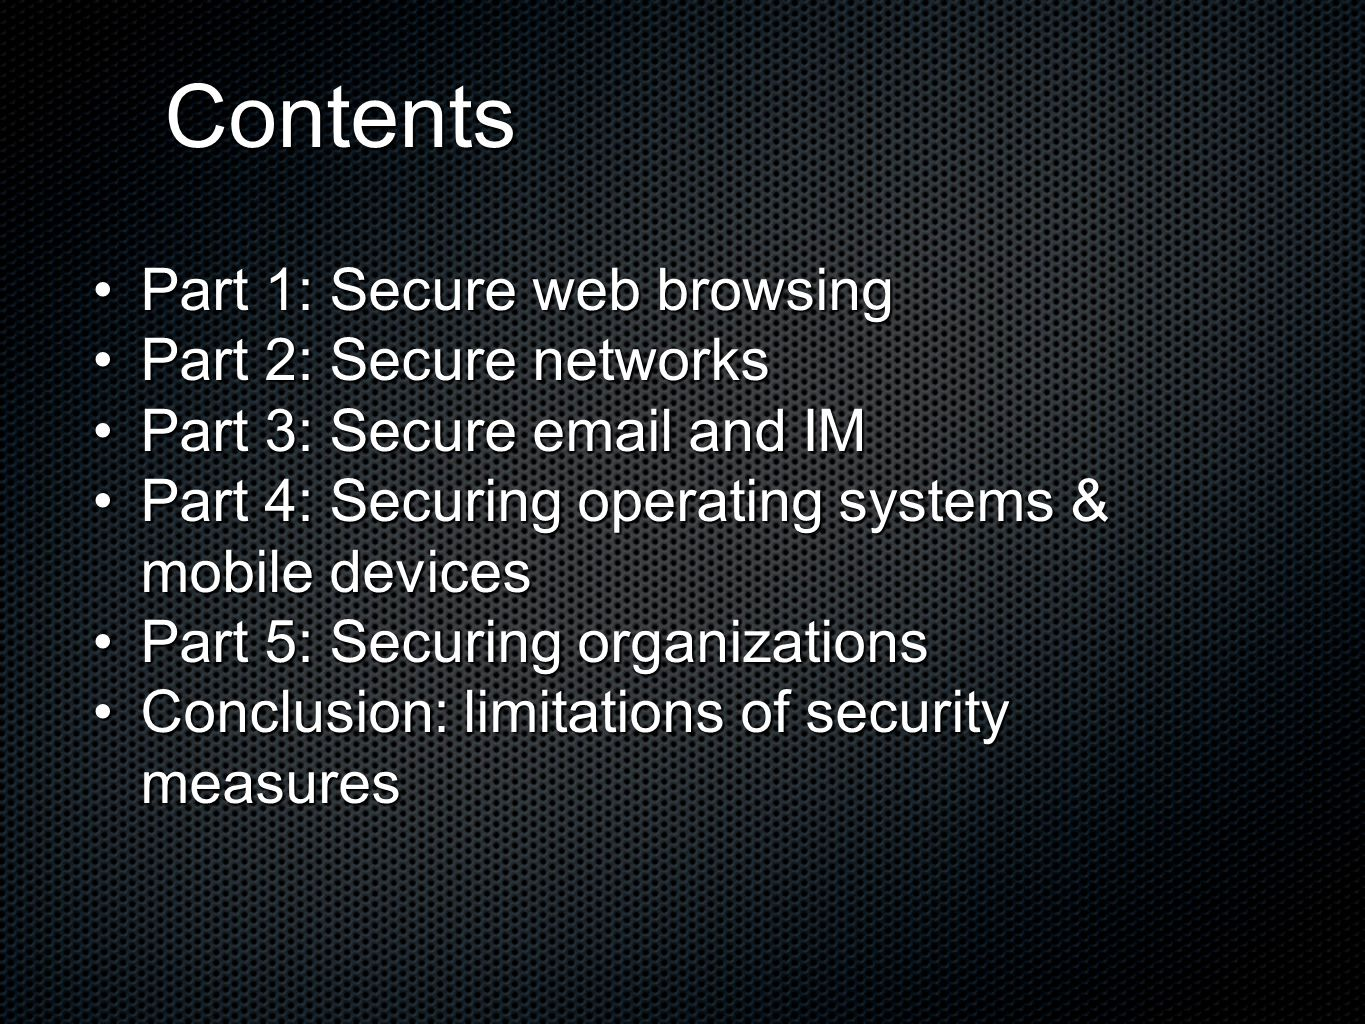 Contents Part 1: Secure web browsingPart 1: Secure web browsing Part 2: Secure networksPart 2: Secure networks Part 3: Secure email and IMPart 3: Secure email and IM Part 4: Securing operating systems & mobile devicesPart 4: Securing operating systems & mobile devices Part 5: Securing organizationsPart 5: Securing organizations Conclusion: limitations of security measuresConclusion: limitations of security measures